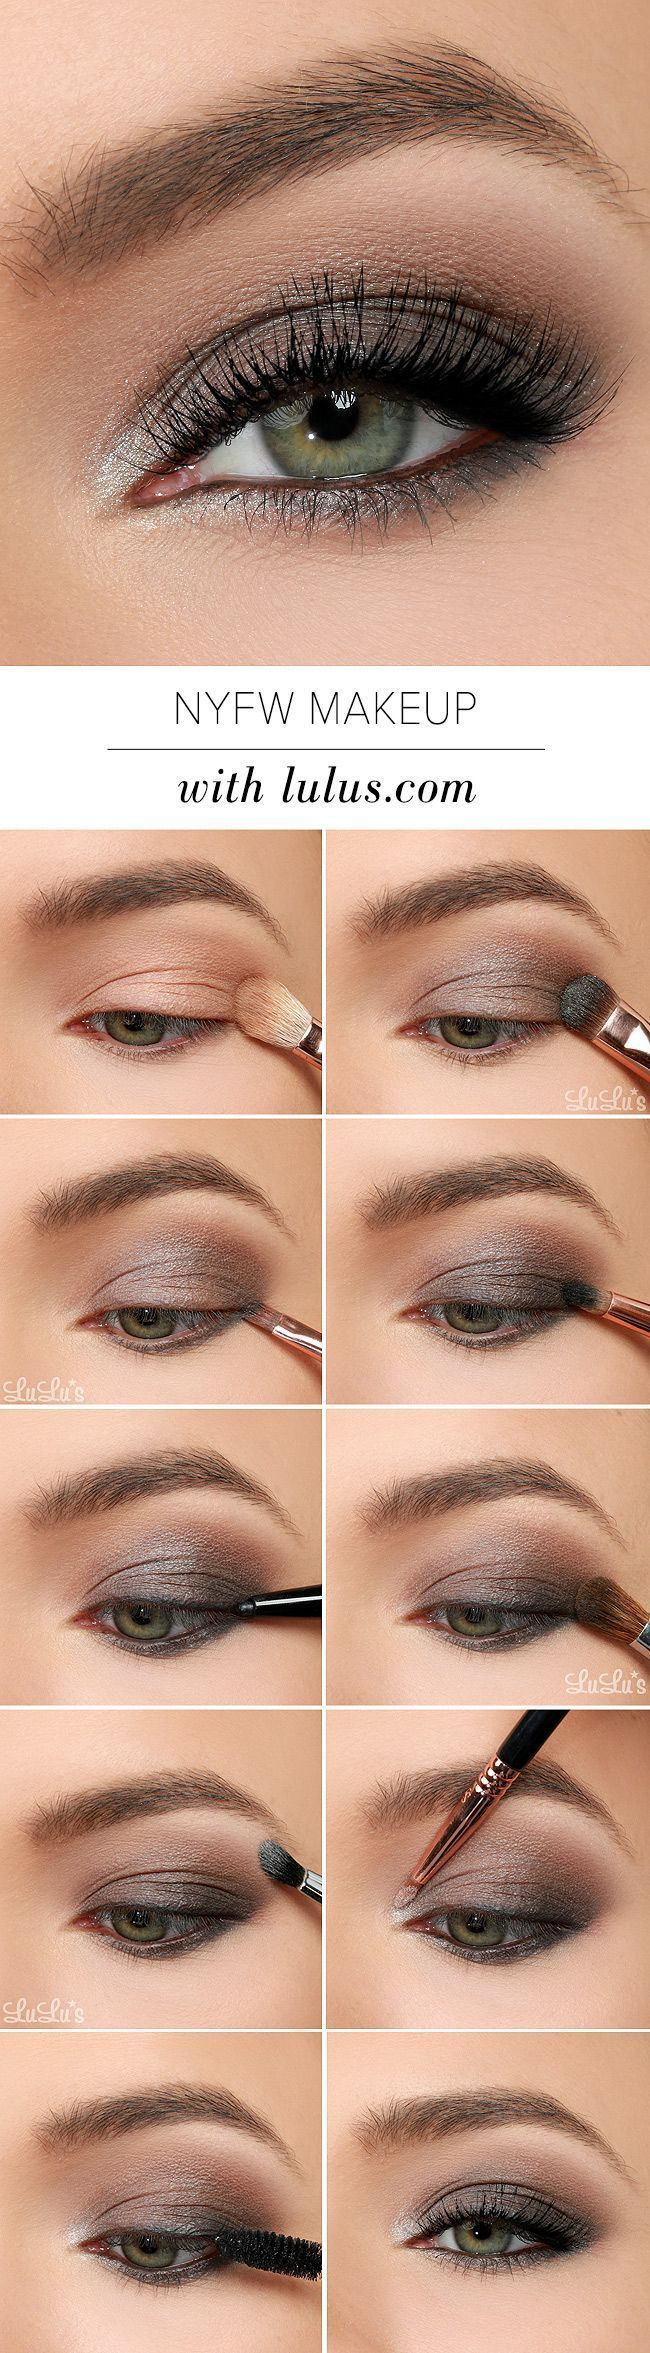 eye makeup tutorial uses gray, black, and metallic silver eye shadows for the perfect night out-ready smoky eye.